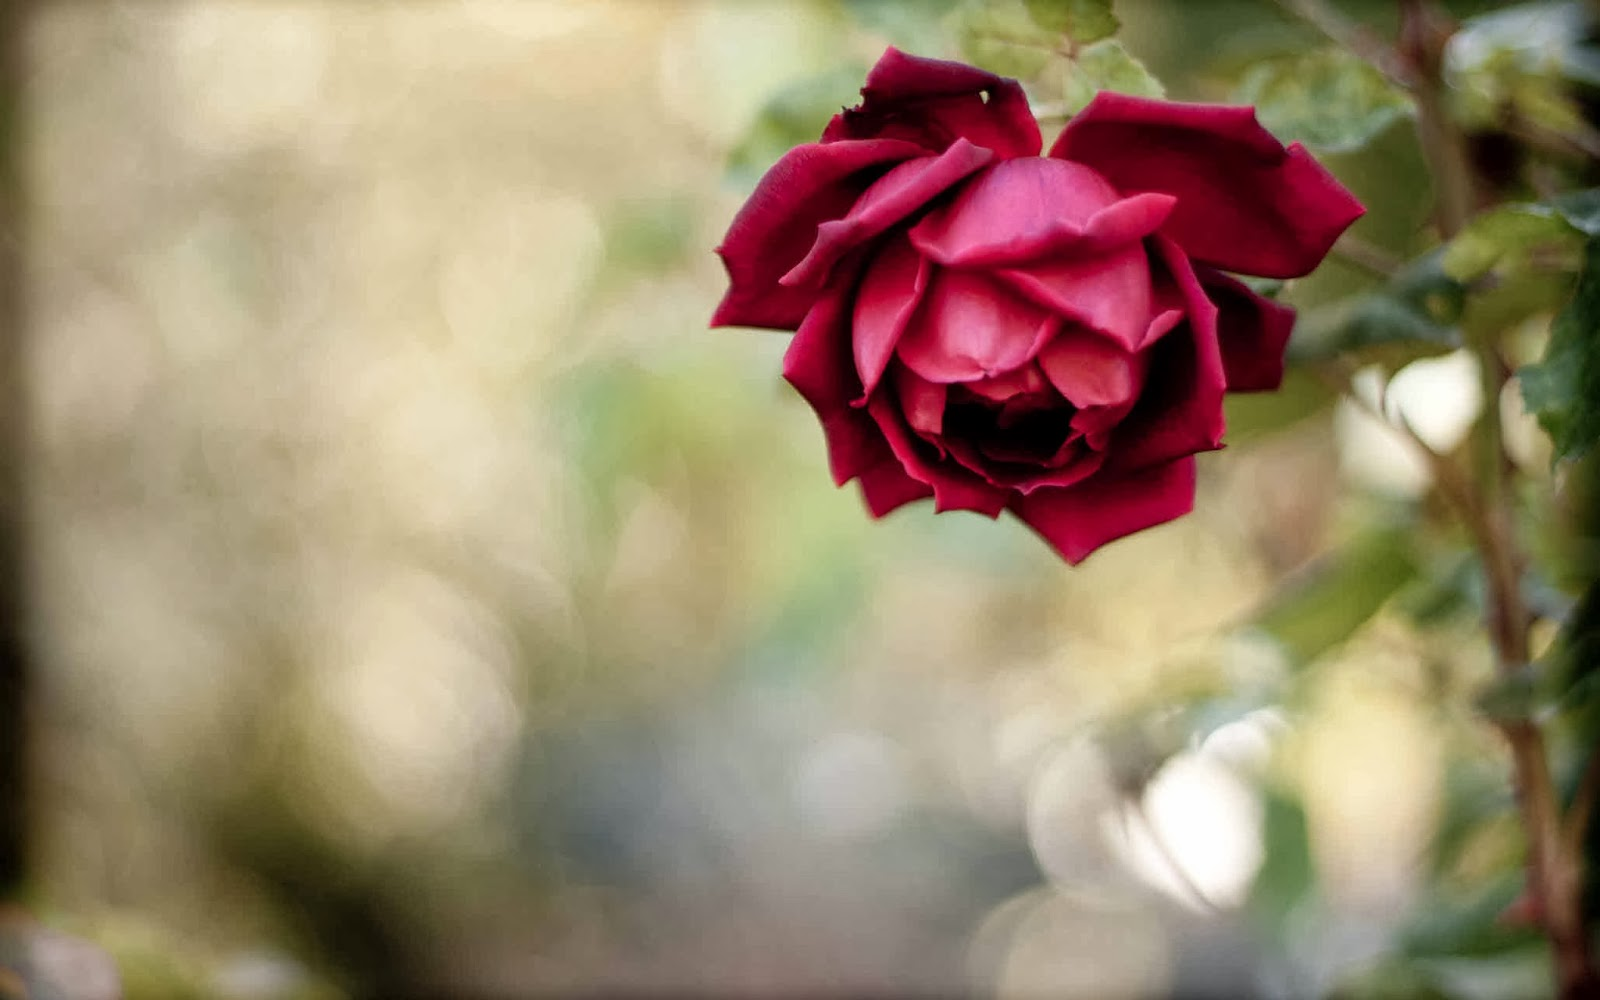 hoontoidly: Roses Tumblr Background Quotes ImagesRed Roses Tumblr Photography